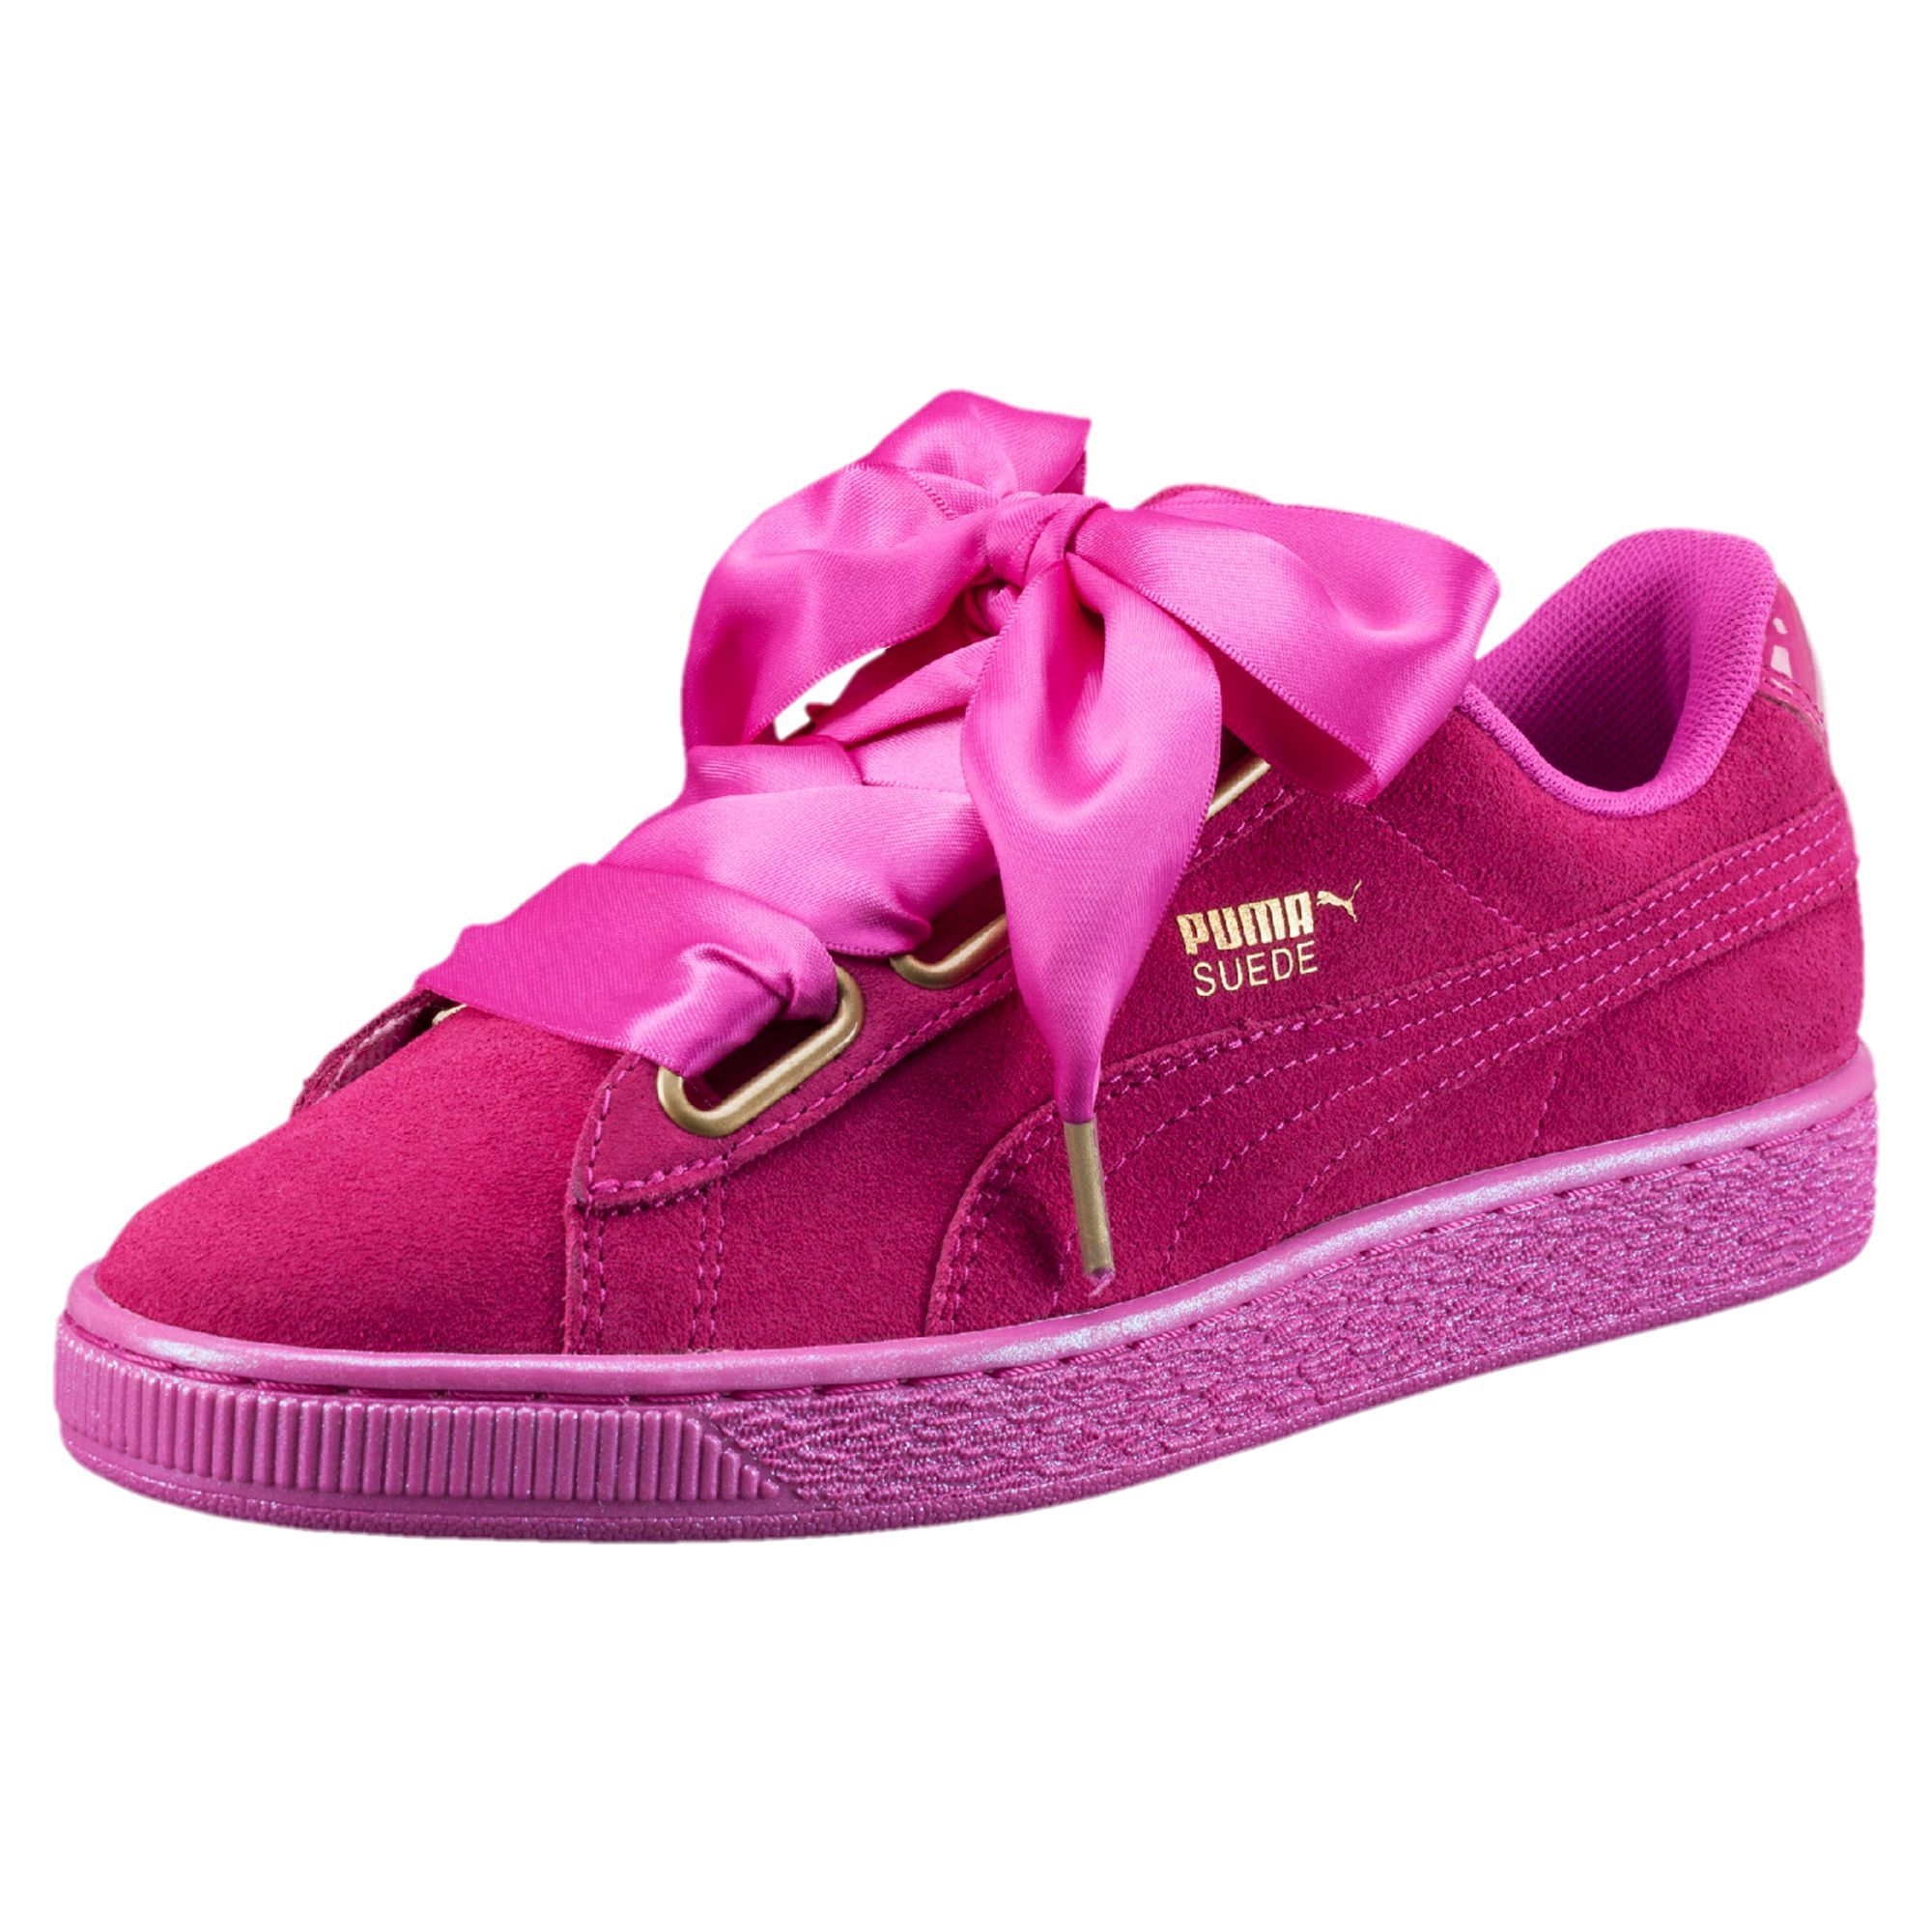 aa7de631478 Suede Heart Satin Women s Sneakers in ULTRA MAGENTA